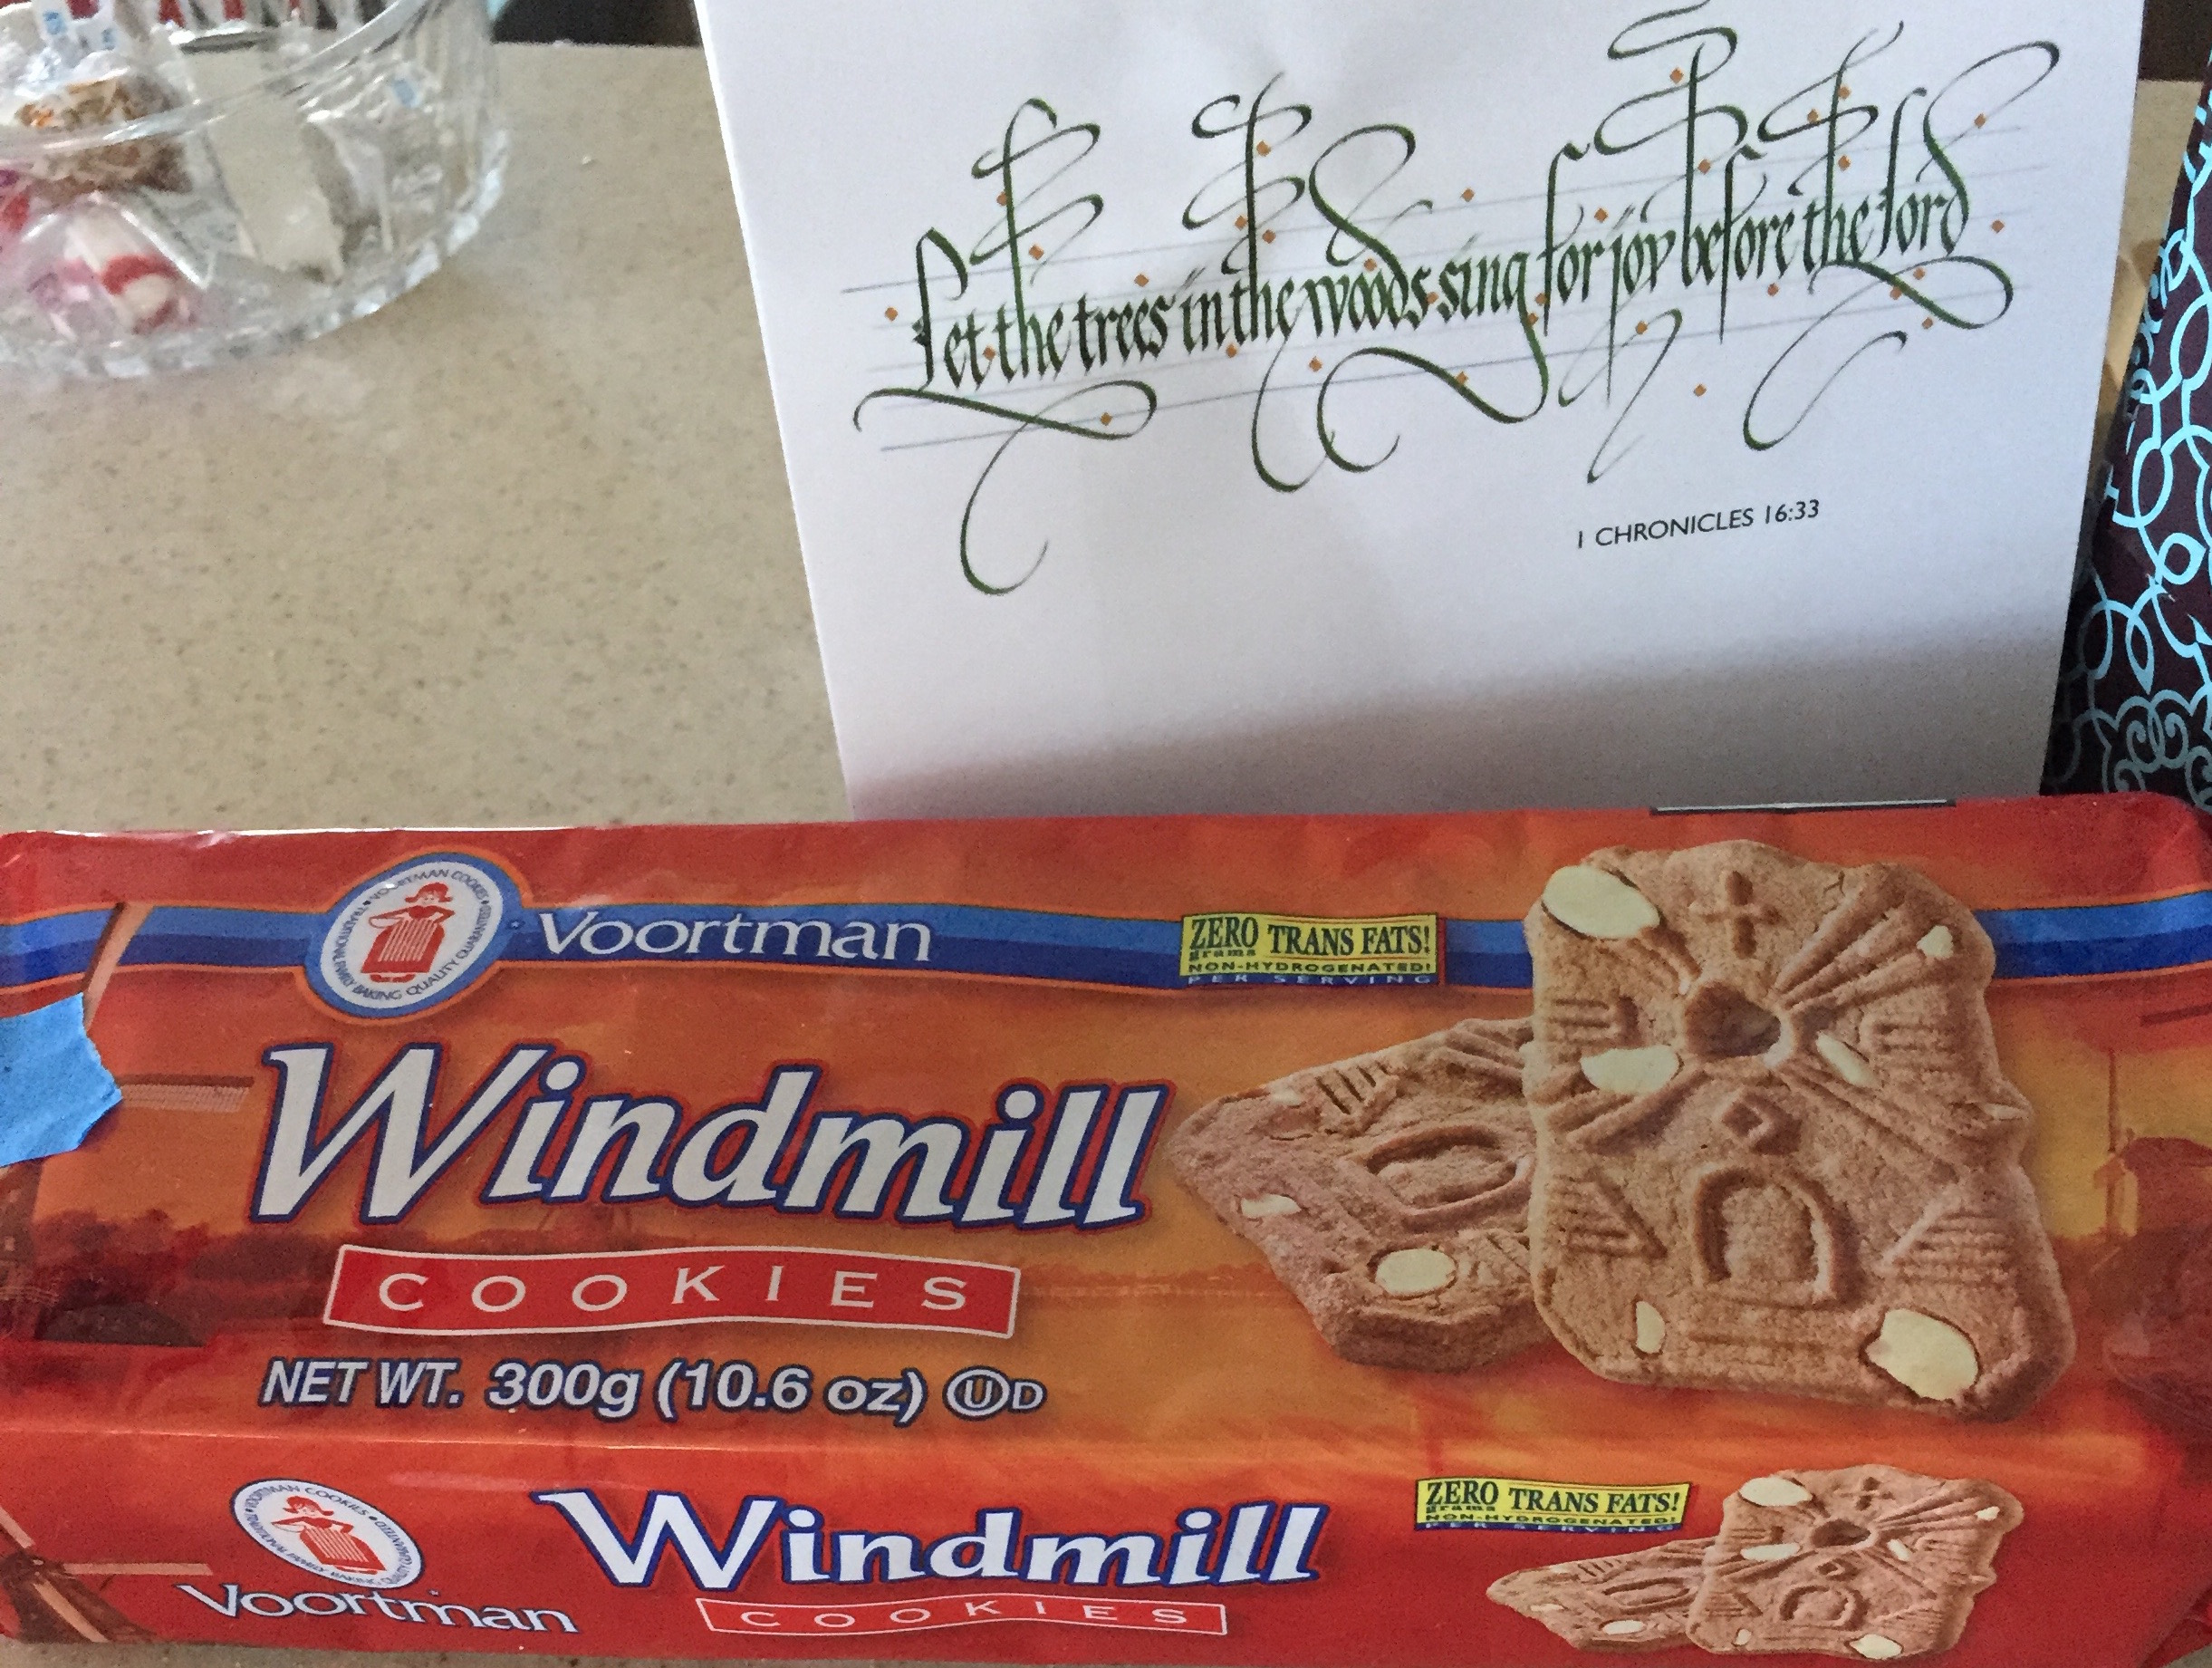 Every Tuesday, after my teaching day, Gram Pett and I would share tea and windmill cookies.